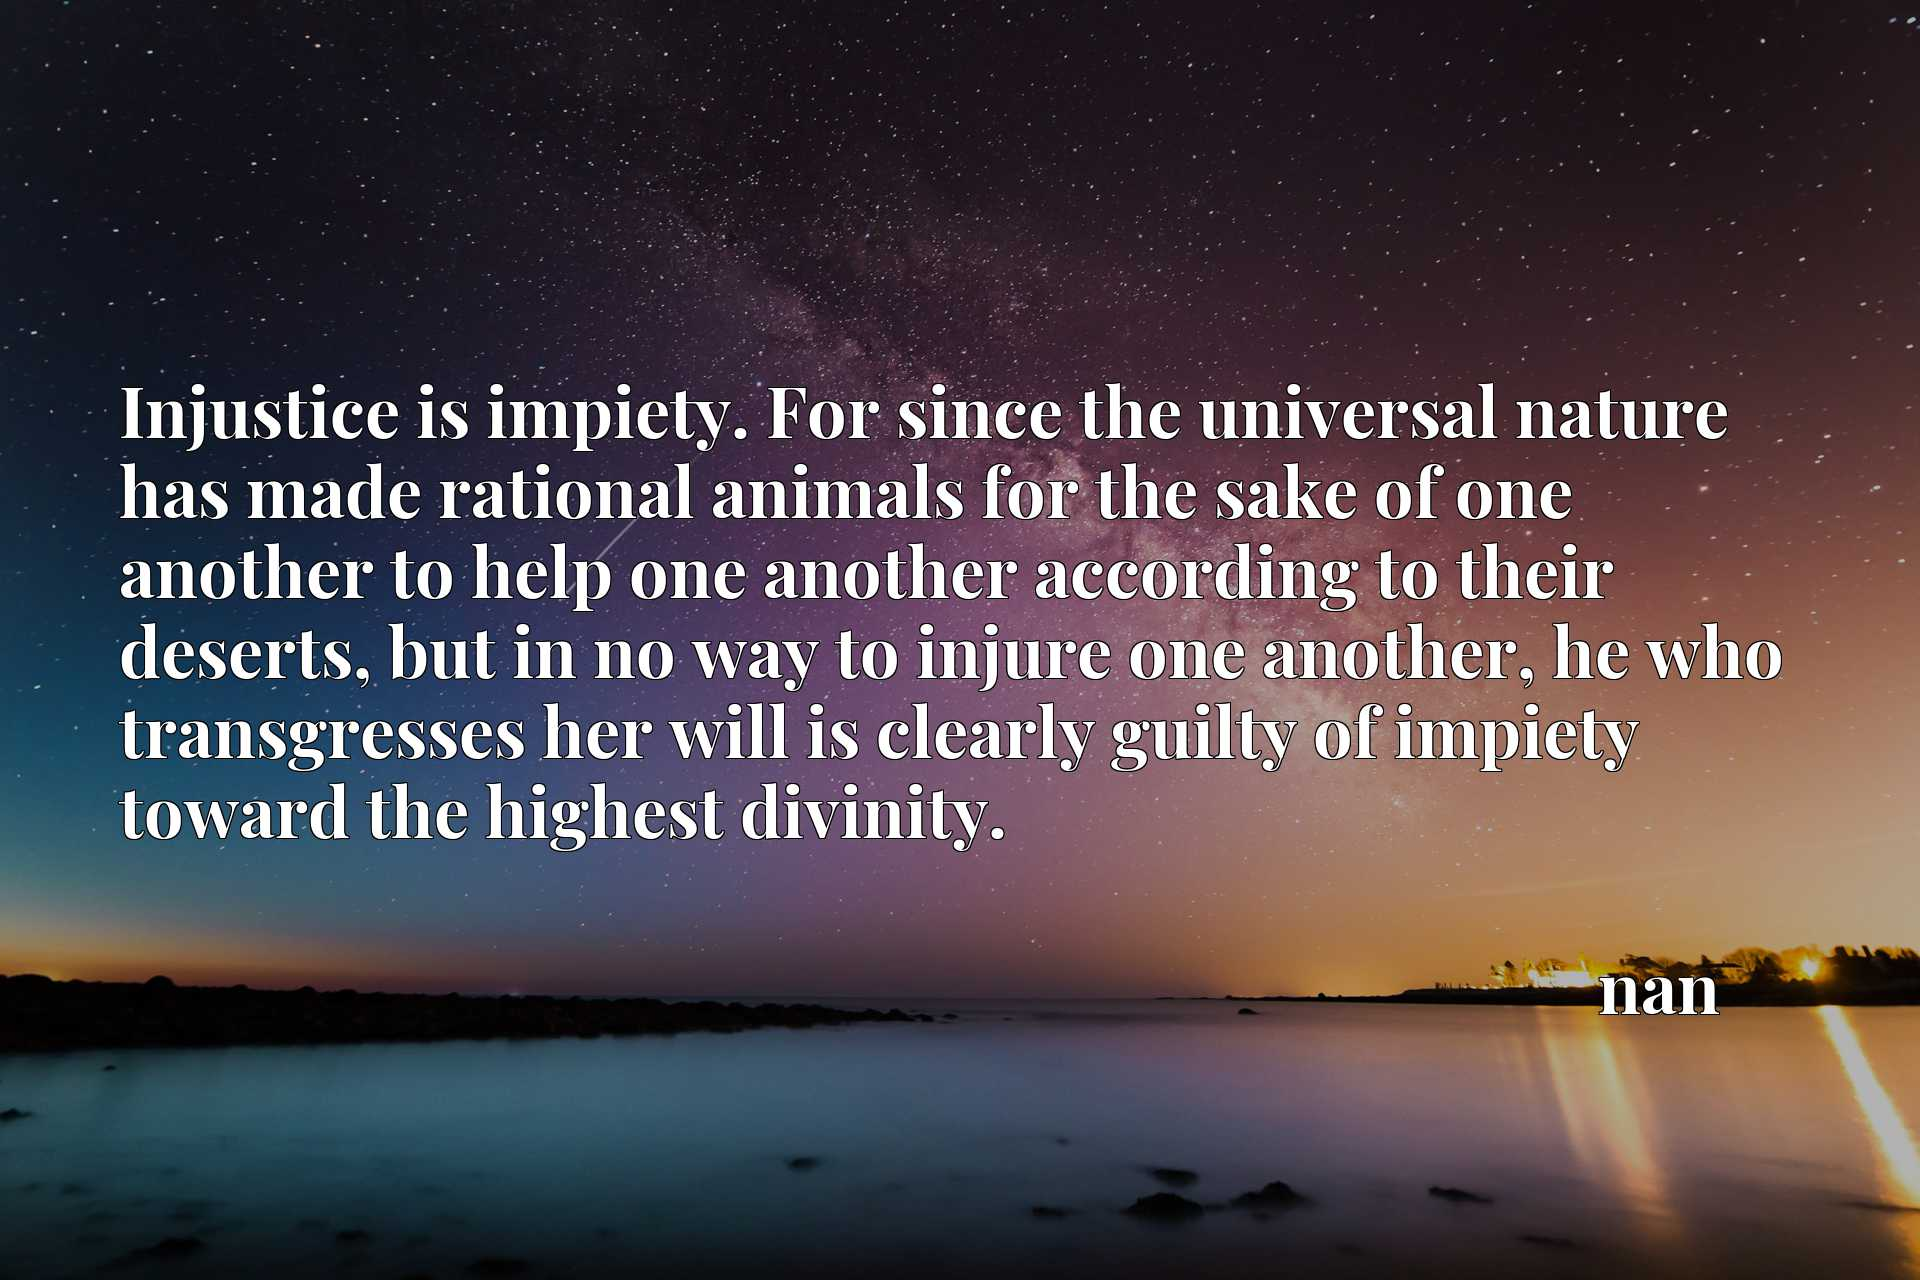 Injustice is impiety. For since the universal nature has made rational animals for the sake of one another to help one another according to their deserts, but in no way to injure one another, he who transgresses her will is clearly guilty of impiety toward the highest divinity.